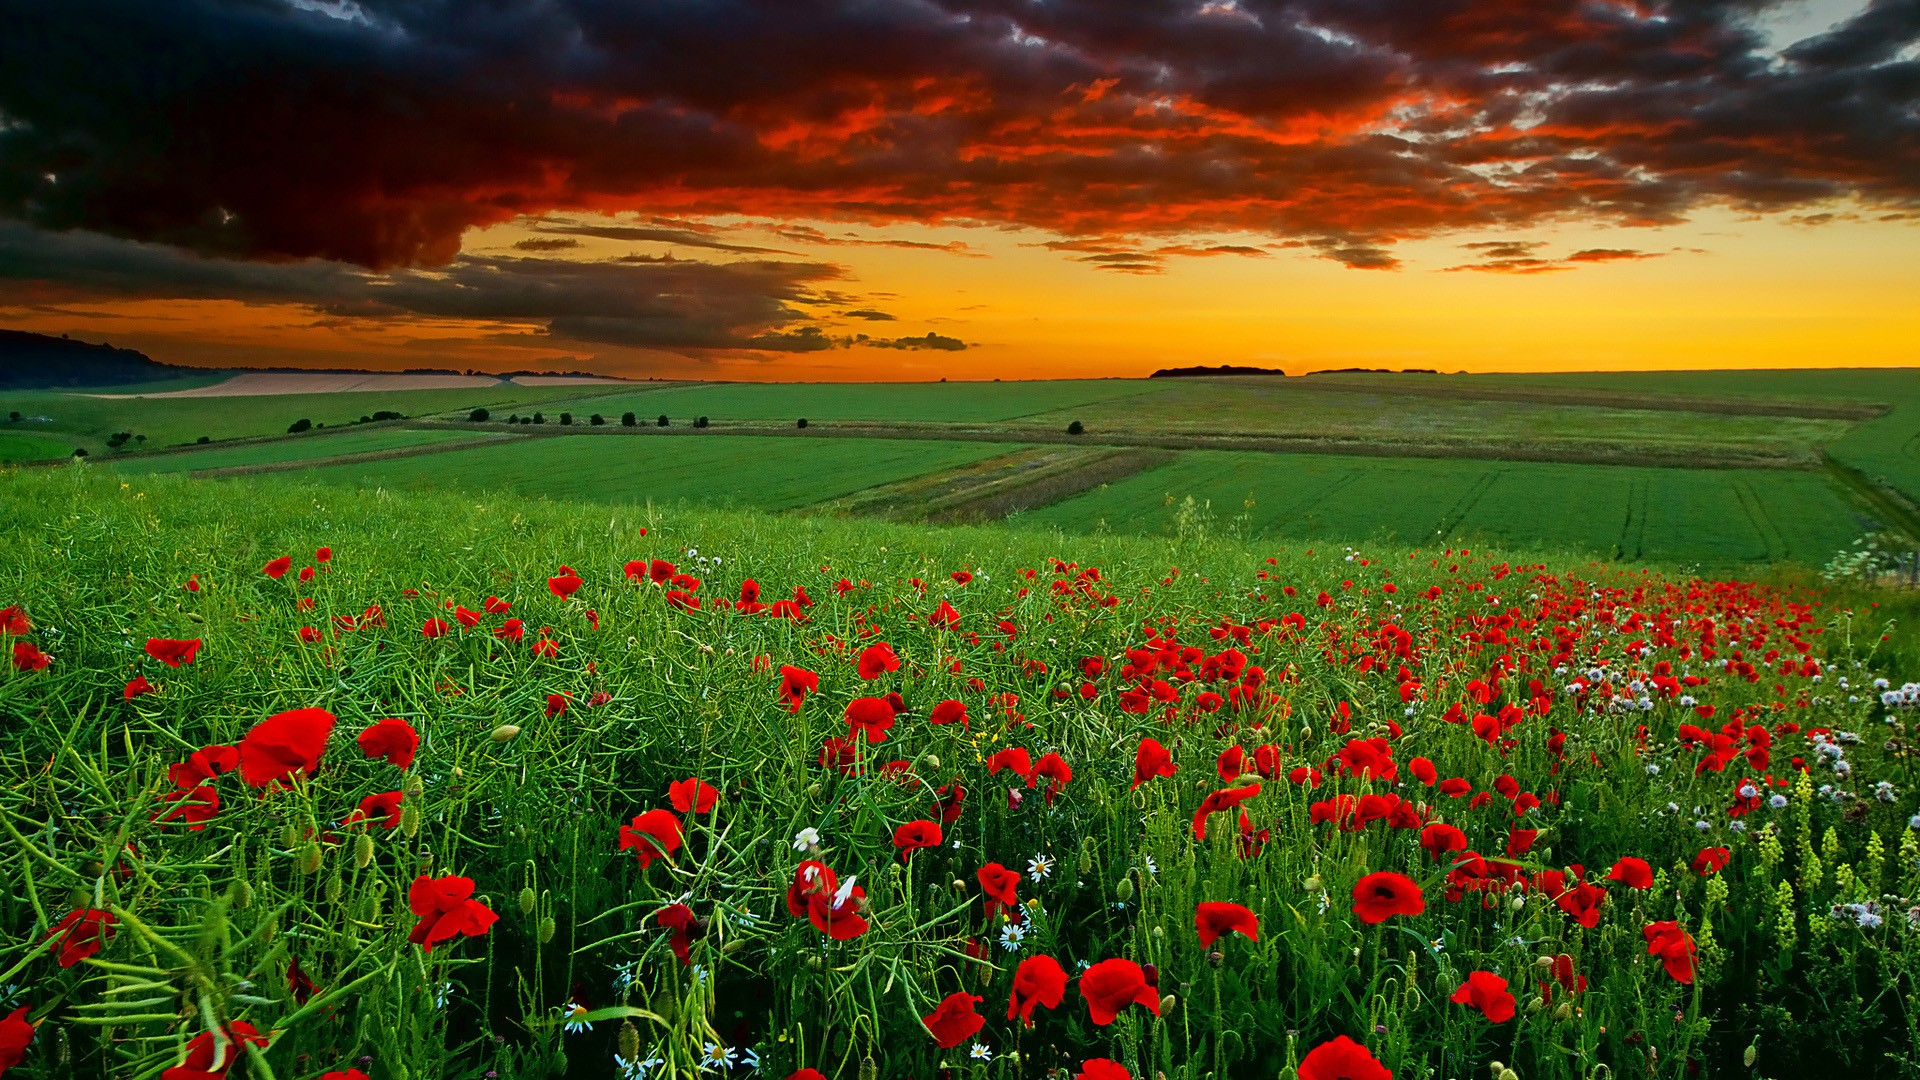 Wallpaper Nature, Red Poppy Valley